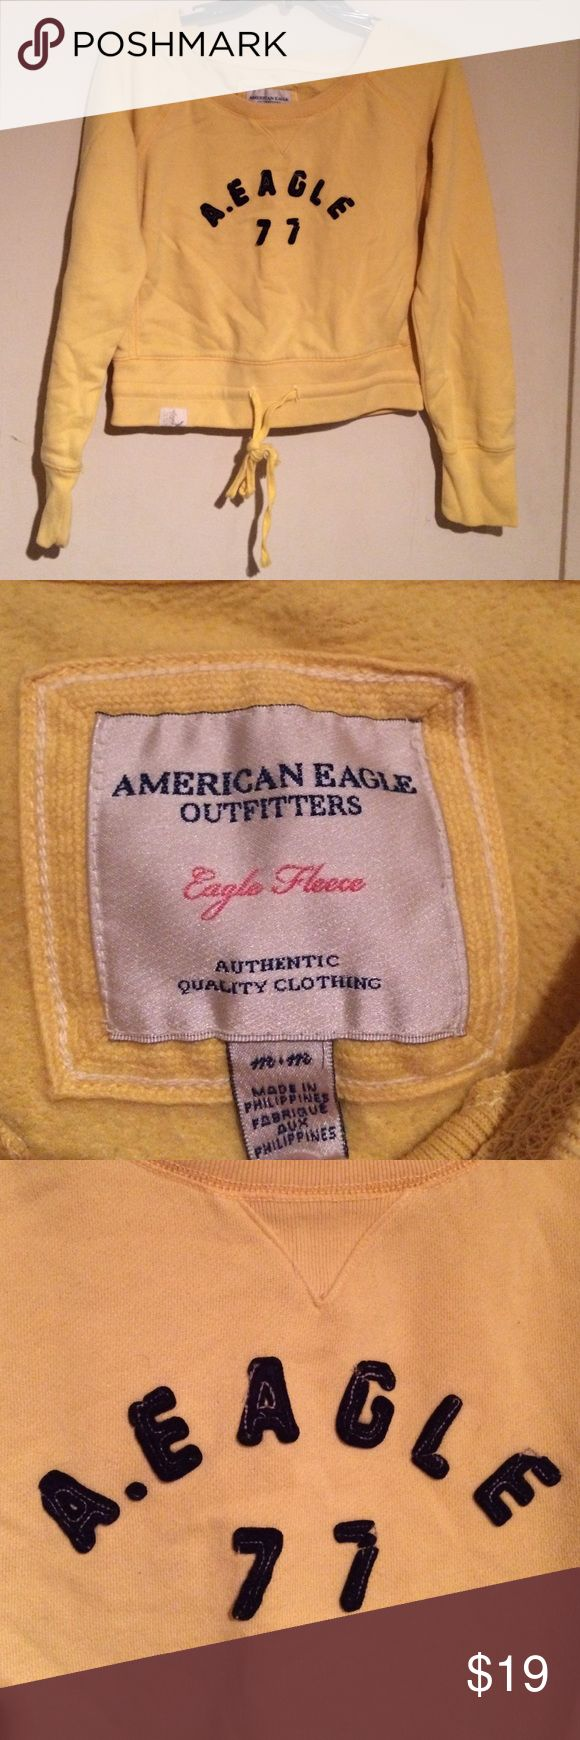 """American Eagle Outfitters yellow sweater This is American Eagle Outfitters yellow sweater that ties in the front for extra support and just looks cute. The front says """"A. Eagle 77"""". Is lightly worn. No noticeable flaws. American Eagle Outfitters Sweaters Crew & Scoop Necks"""